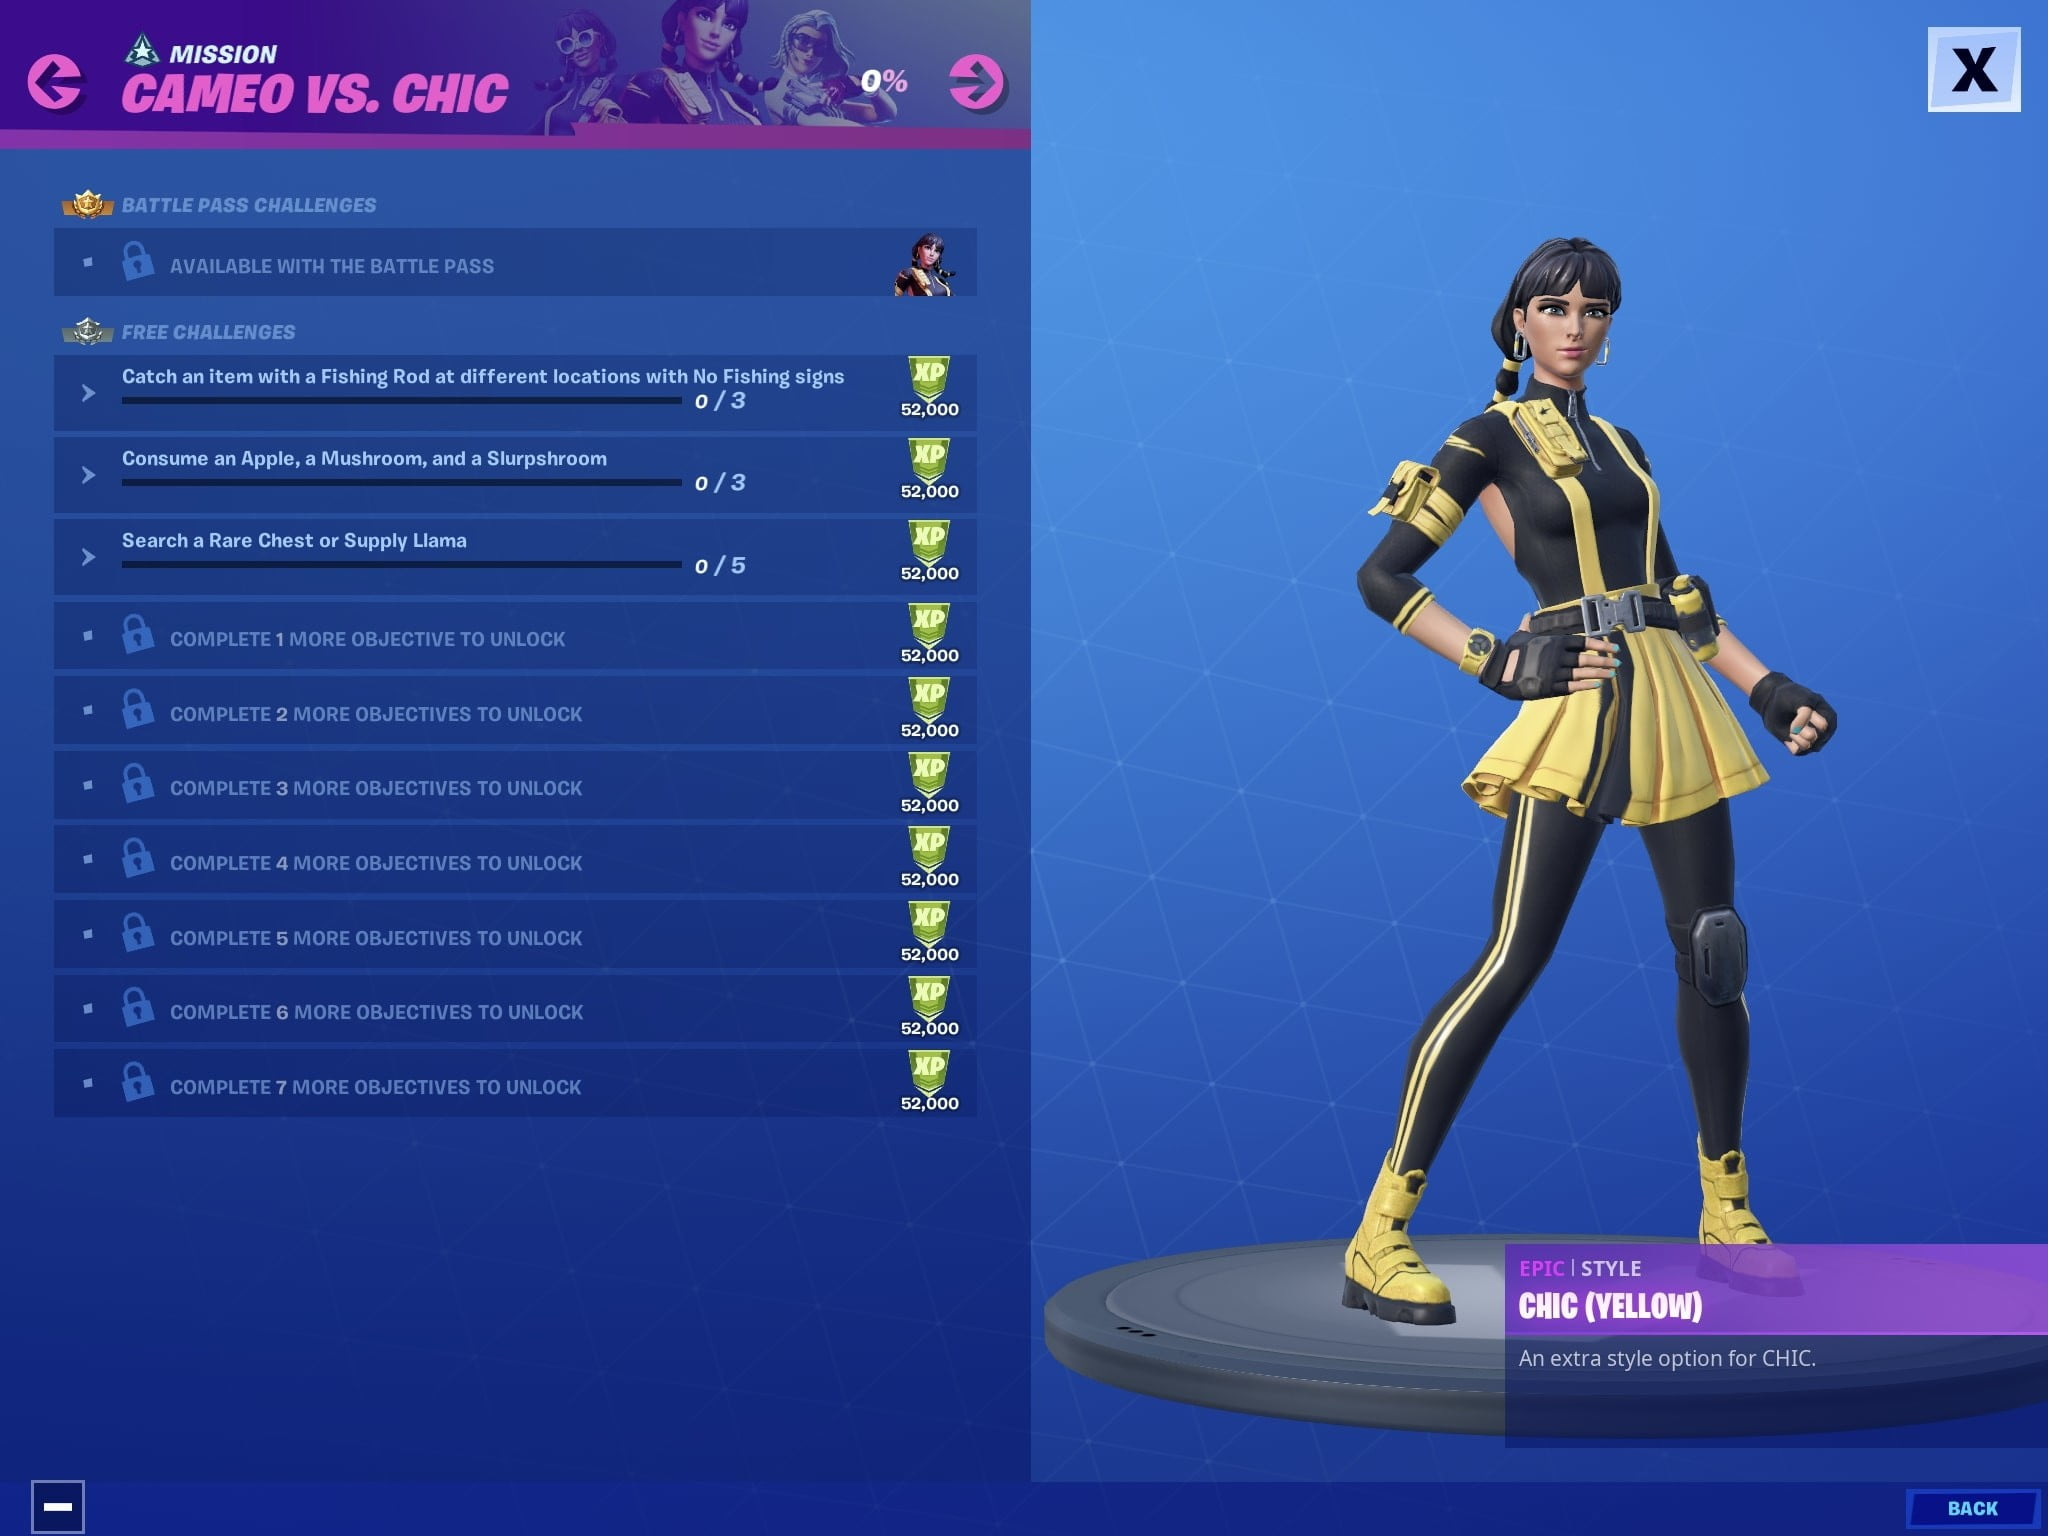 Fortnite Cameo vs Chic Challenges